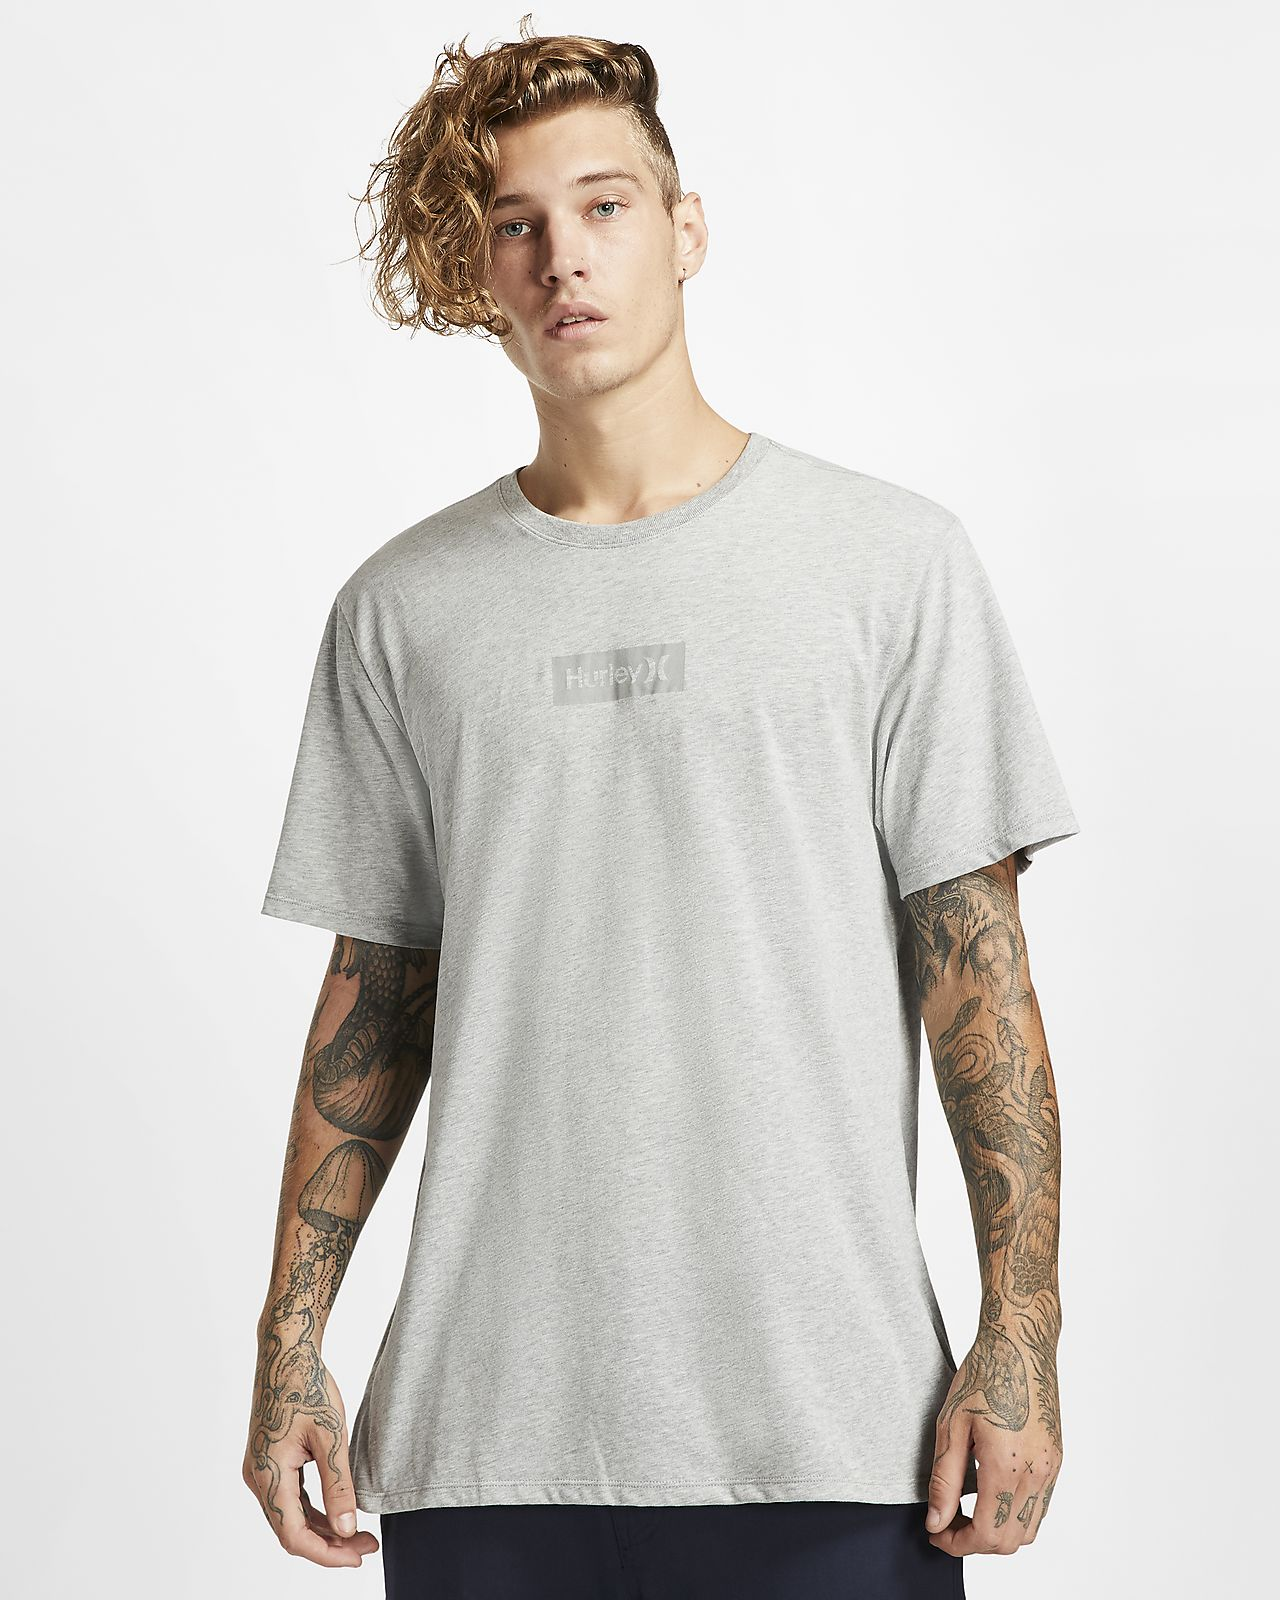 Hurley Dri-FIT One And Only Small Box Reflective-T-shirt til mænd